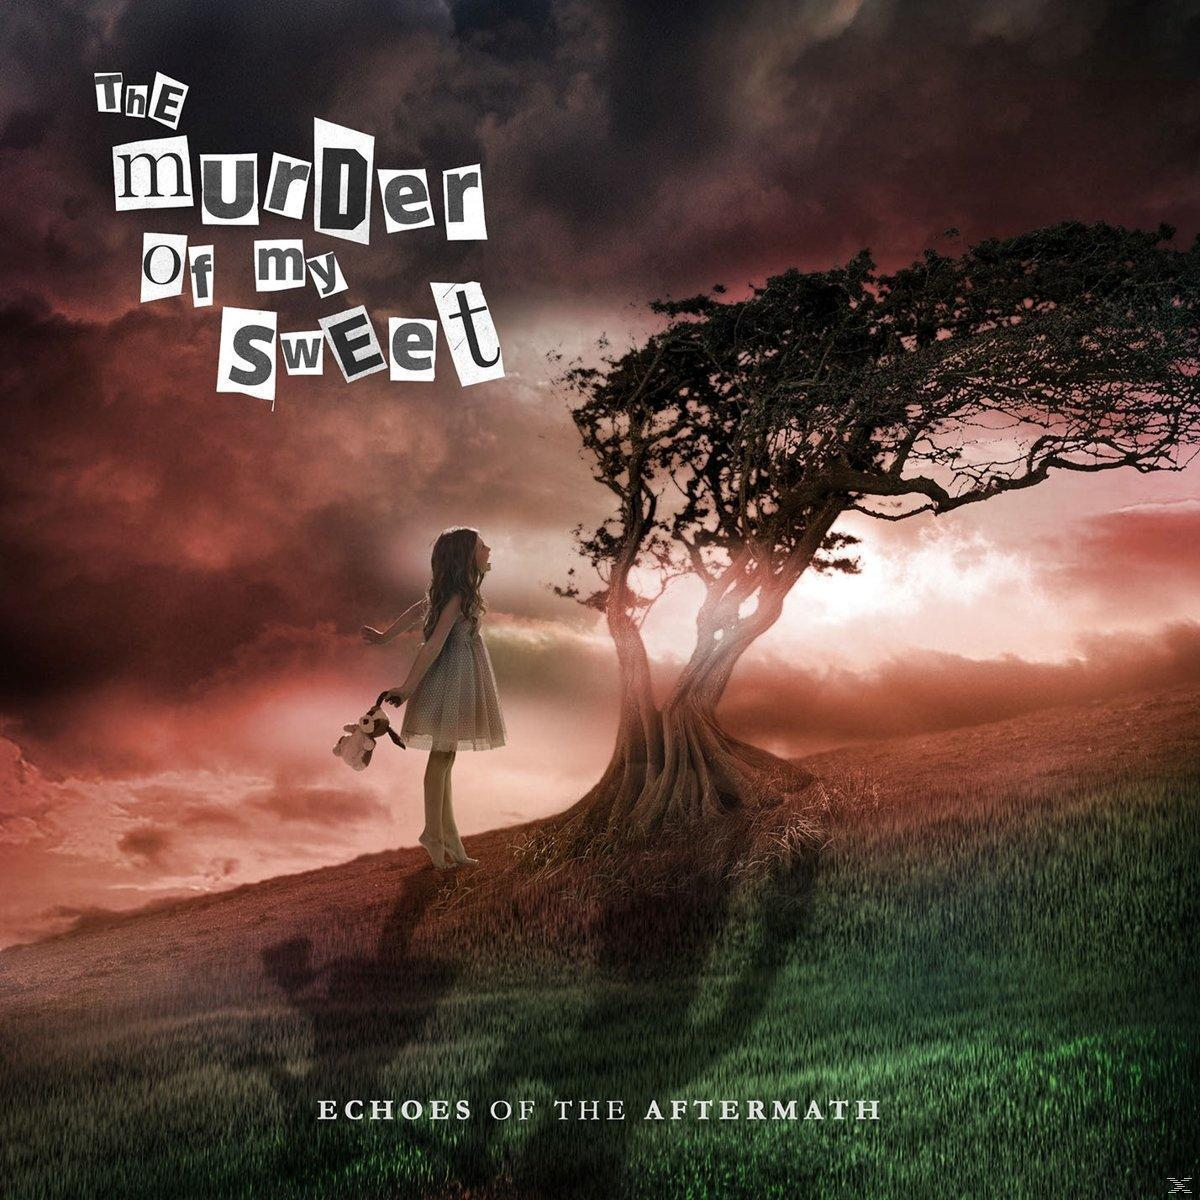 Echoes Of The Aftermath (The Murder Of My Sweet) für 7,49 Euro